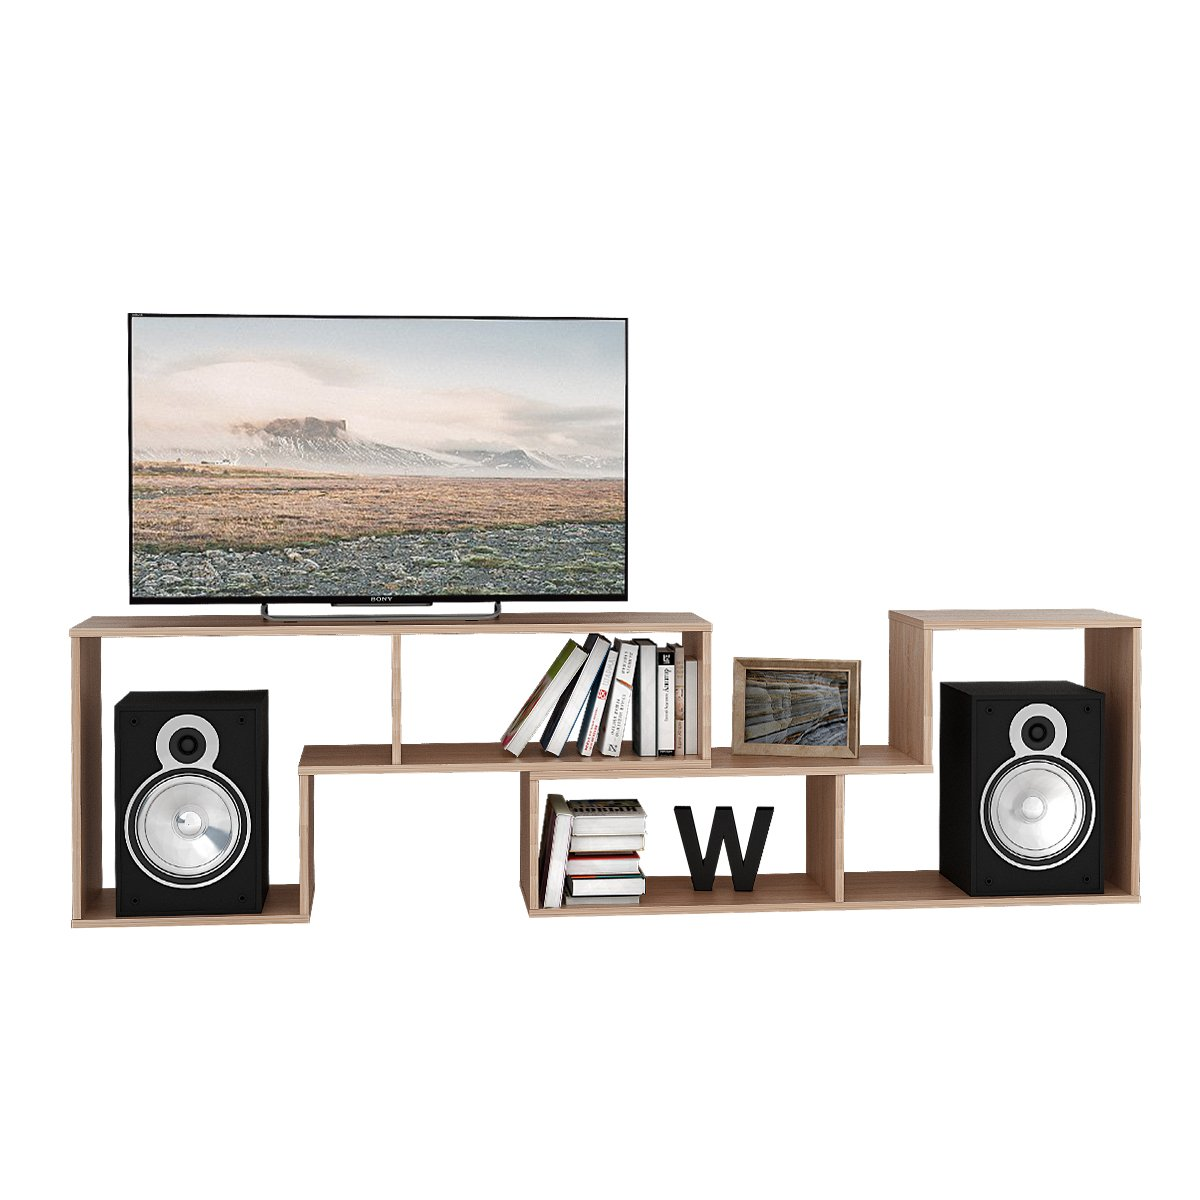 DEVAISE 3-in-1 Versatile TV Stand Bookcase Display Cabinet by Oak (0.6'' thickness)